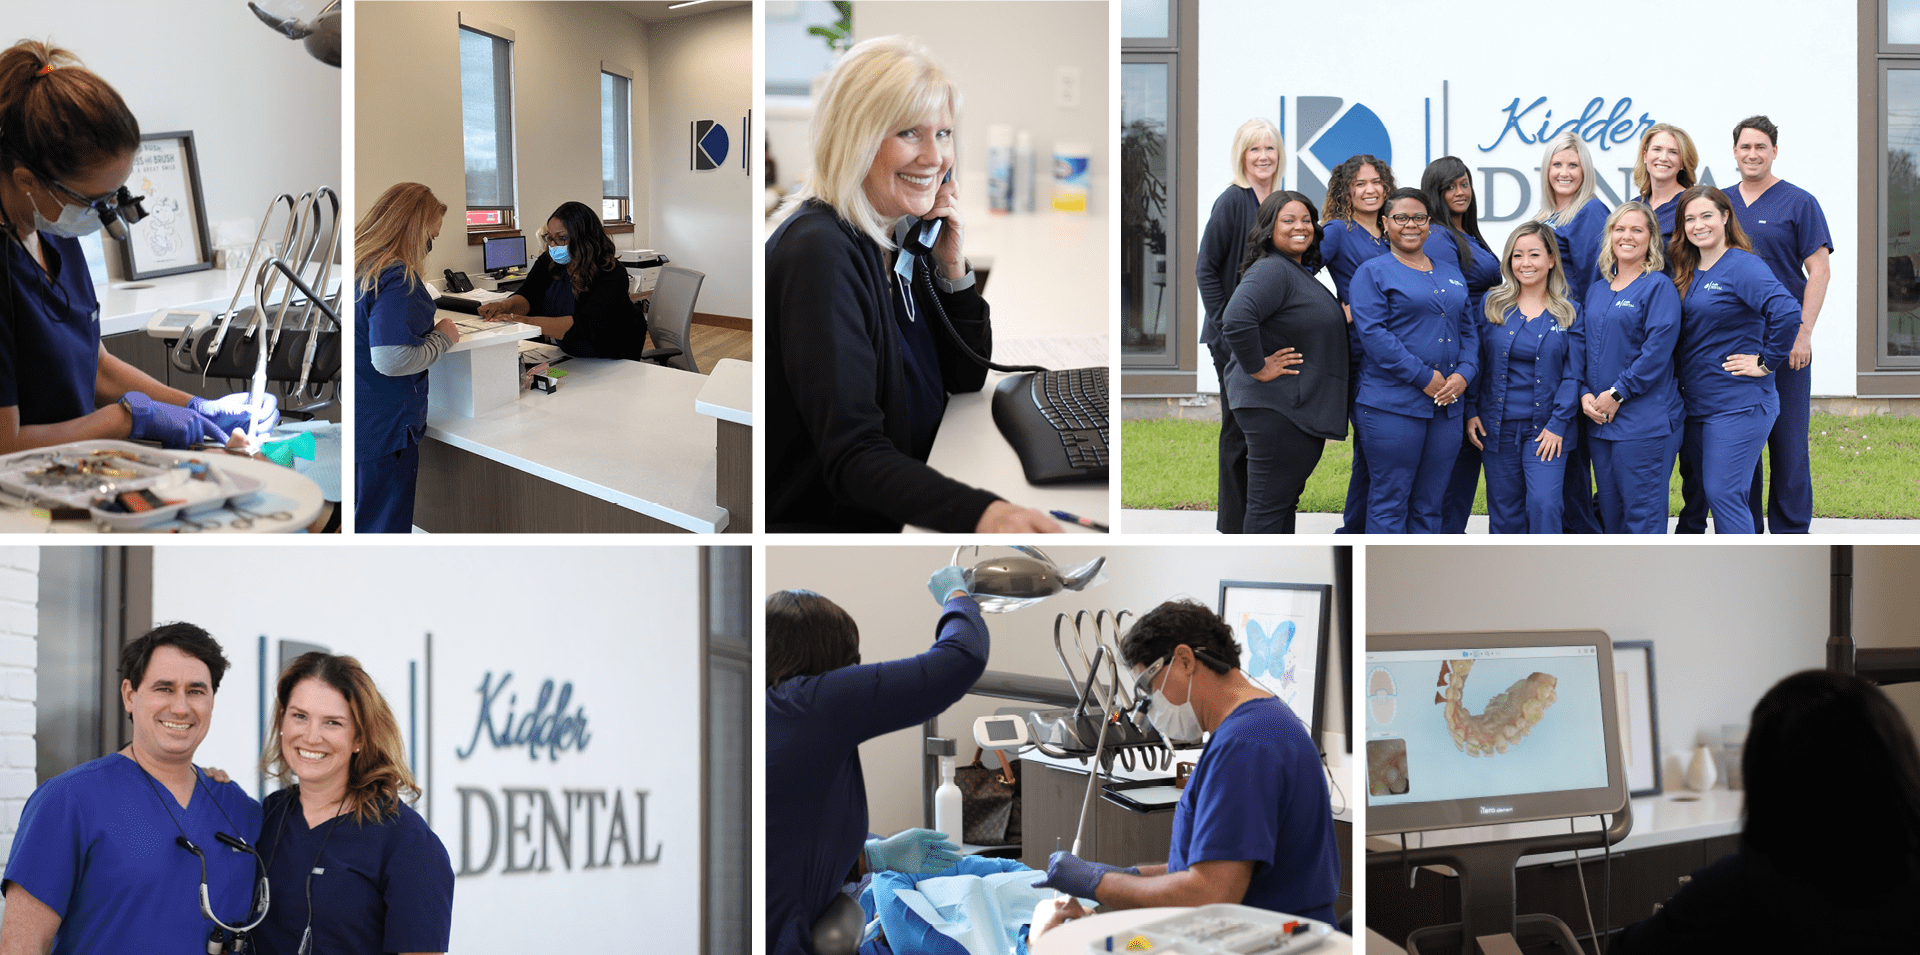 Montage of the specialization features at Kidder Dental.